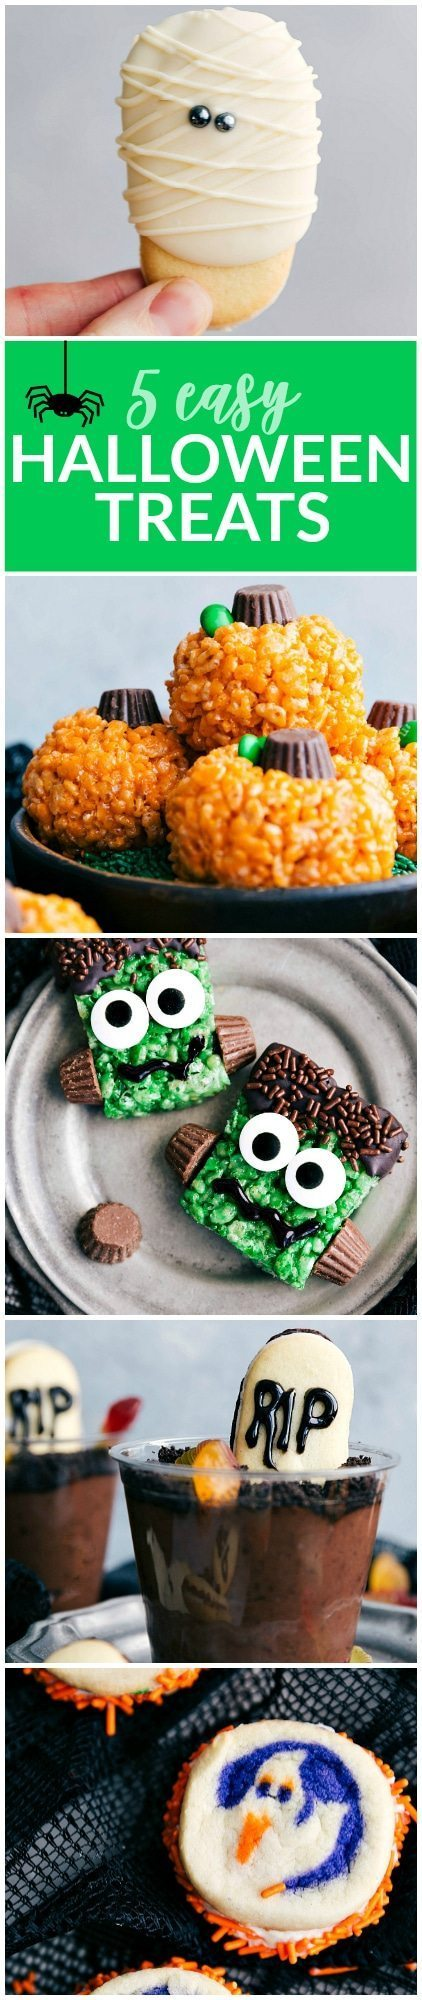 5 super easy Halloween treats -- mummy cookies, graveyard pudding cups, Frankenstein kripsies, pumpkin krispies, and double-sided Halloween sandwich cookies via chelseasmessyapron.com